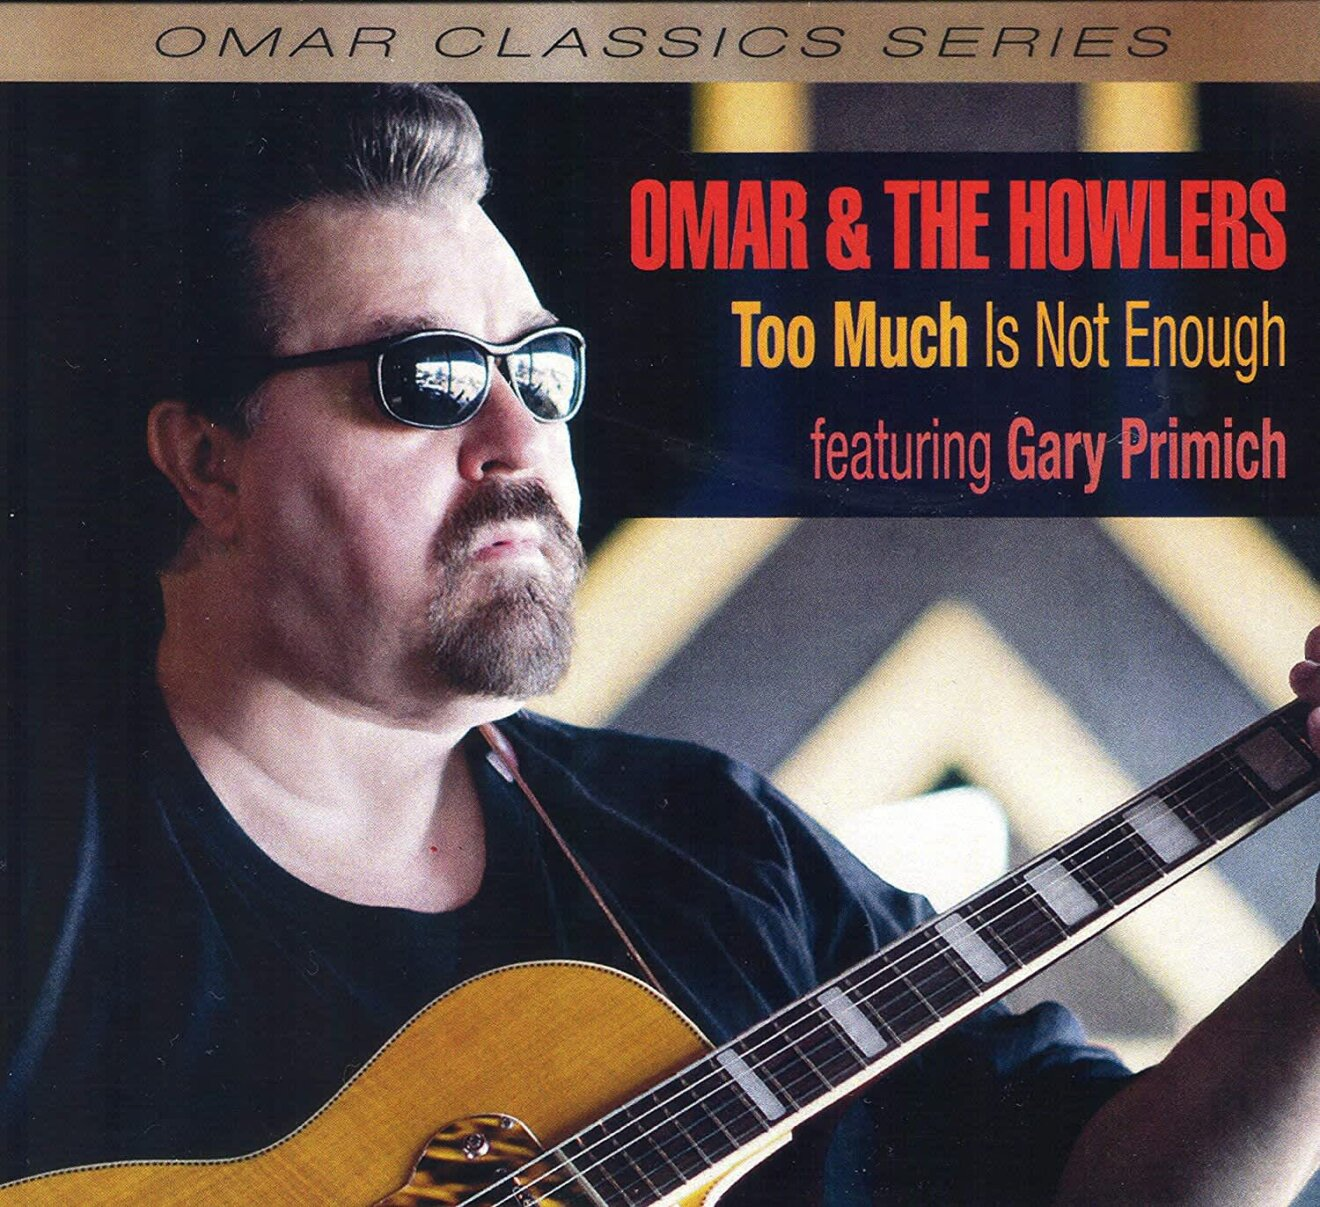 Omar & The Howlers Too Much Is Not Enough